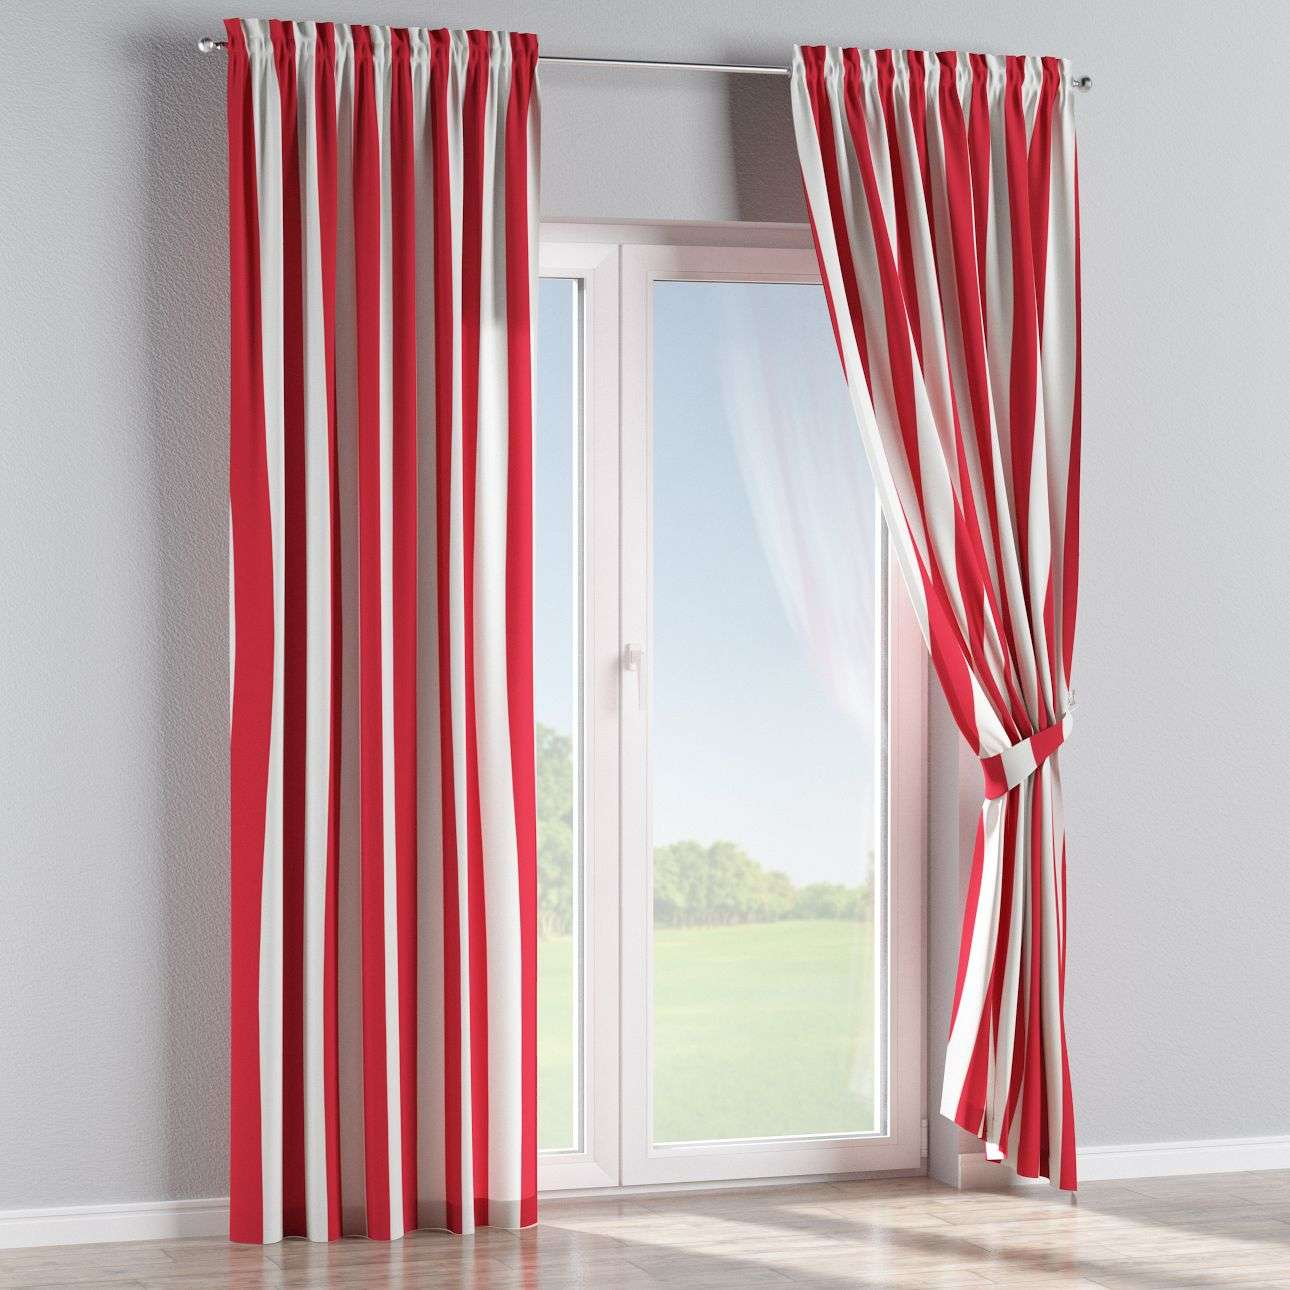 Slot and frill curtains 130 x 260 cm (51 x 102 inch) in collection Comics/Geometrical, fabric: 137-54